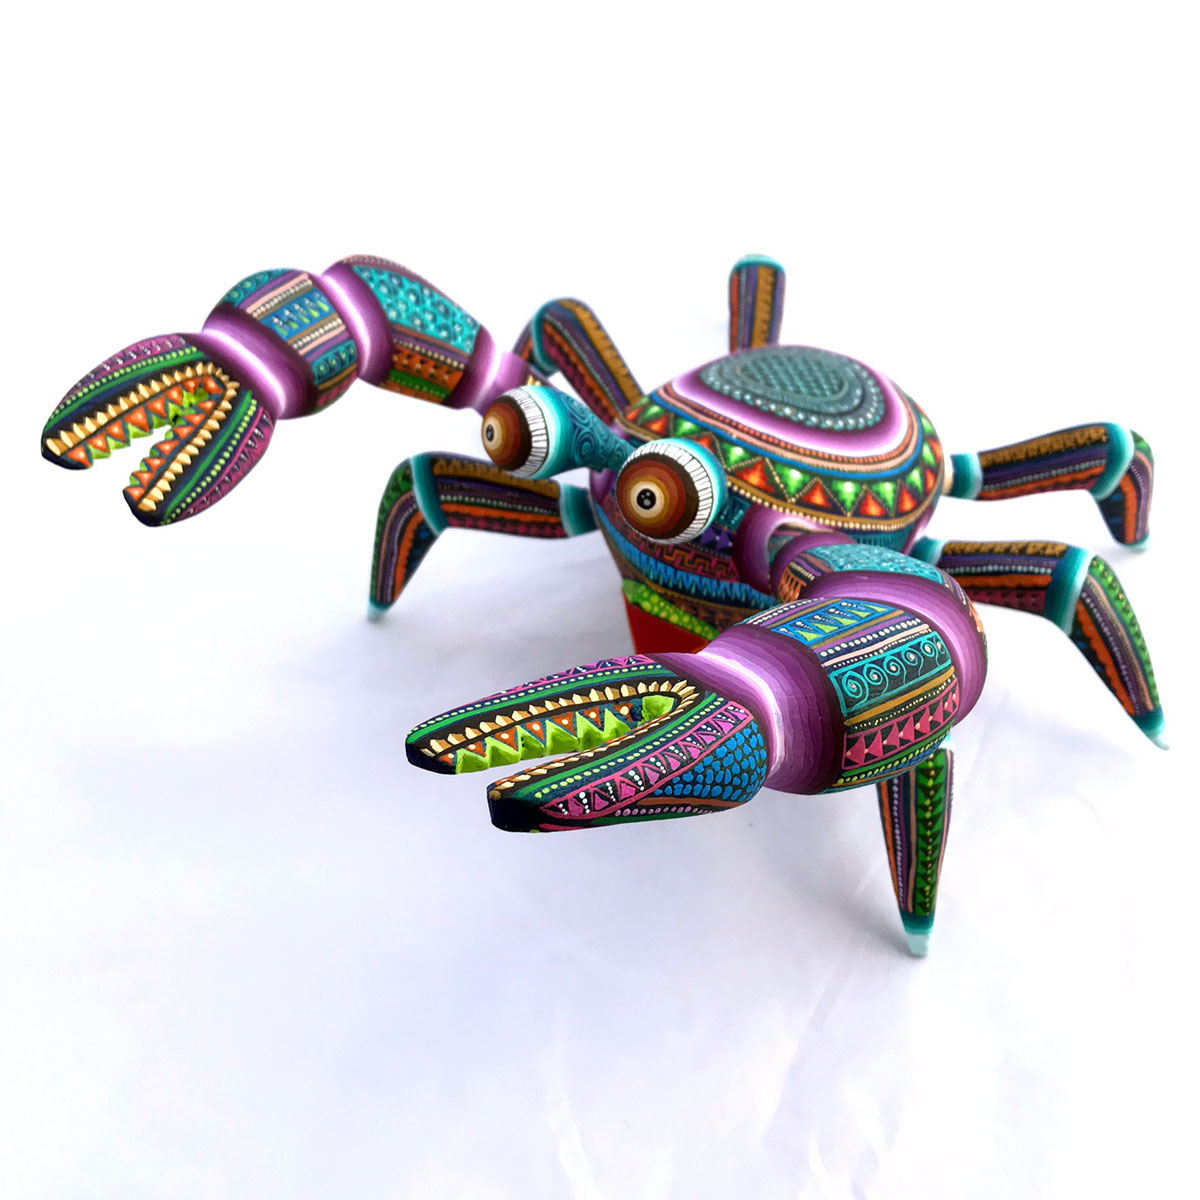 Ivan Fuentes & Mayte Calvo Ivan Fuentes & Mayte Calvo: Stunning Collector Crab Crab